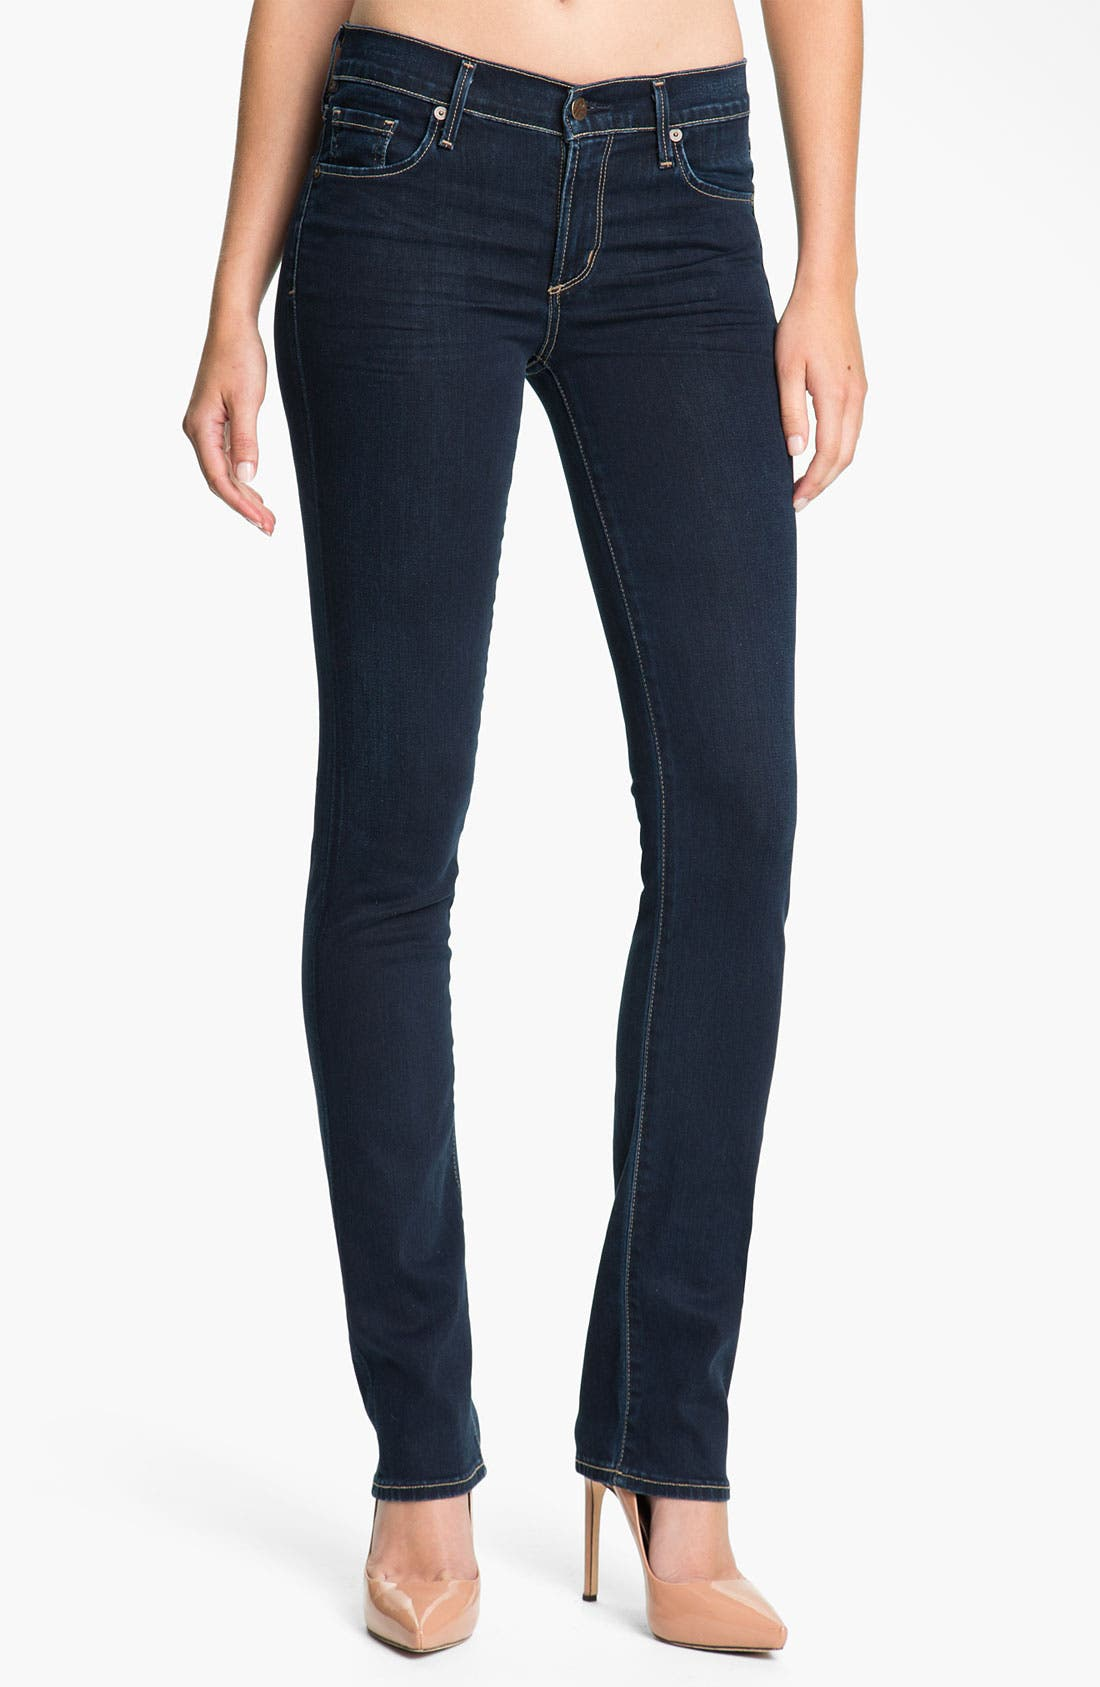 Alternate Image 1 Selected - Citizens of Humanity 'Elson' Straight Leg Jeans (Starry)